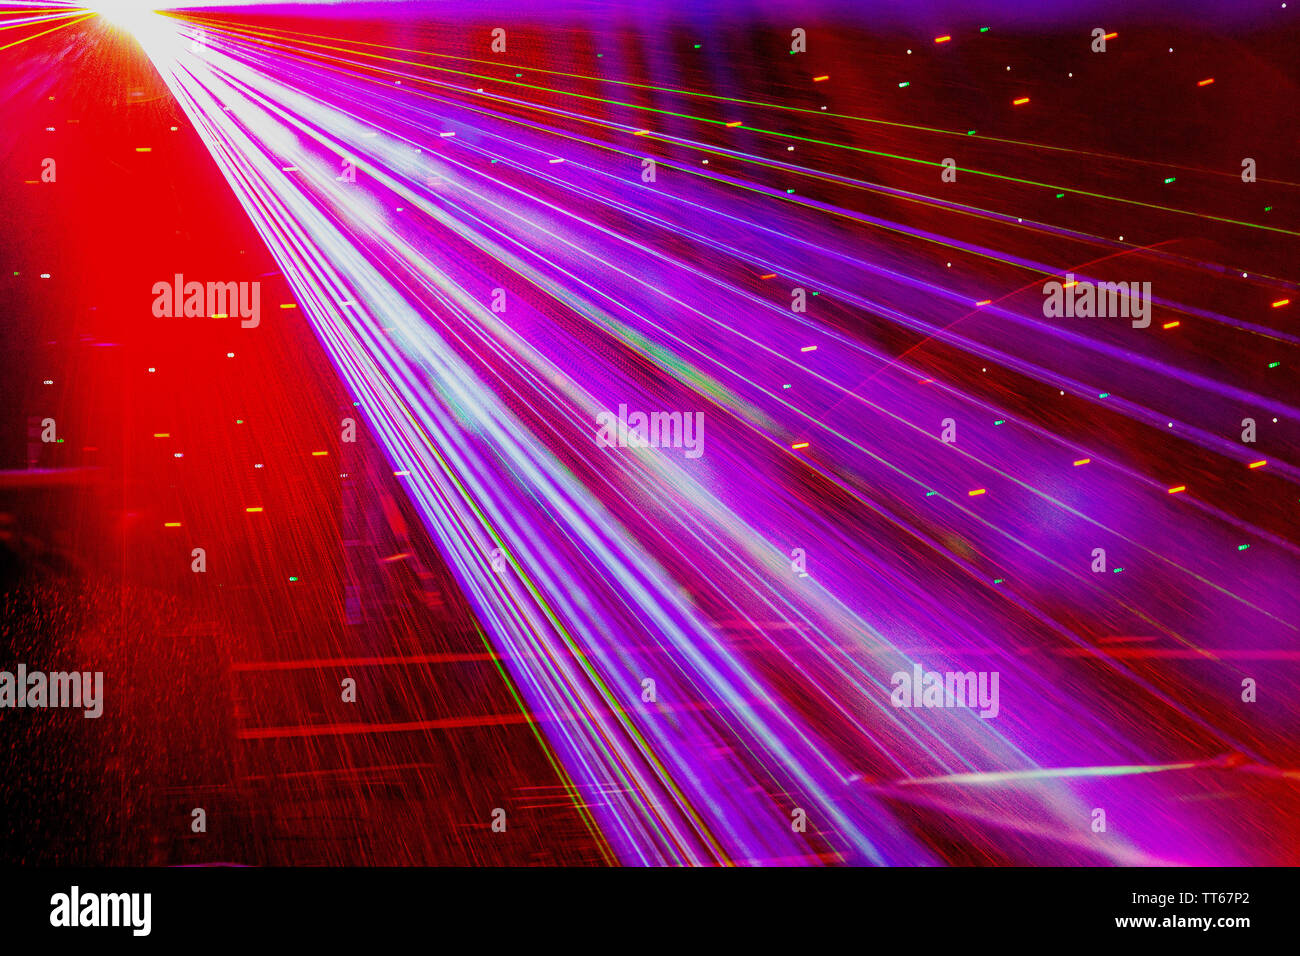 Bright nightclub red laser lights cutting through smoke machine smoke making light and rainbow patterns on the dance floor. Laser lights with bokeh in - Stock Image